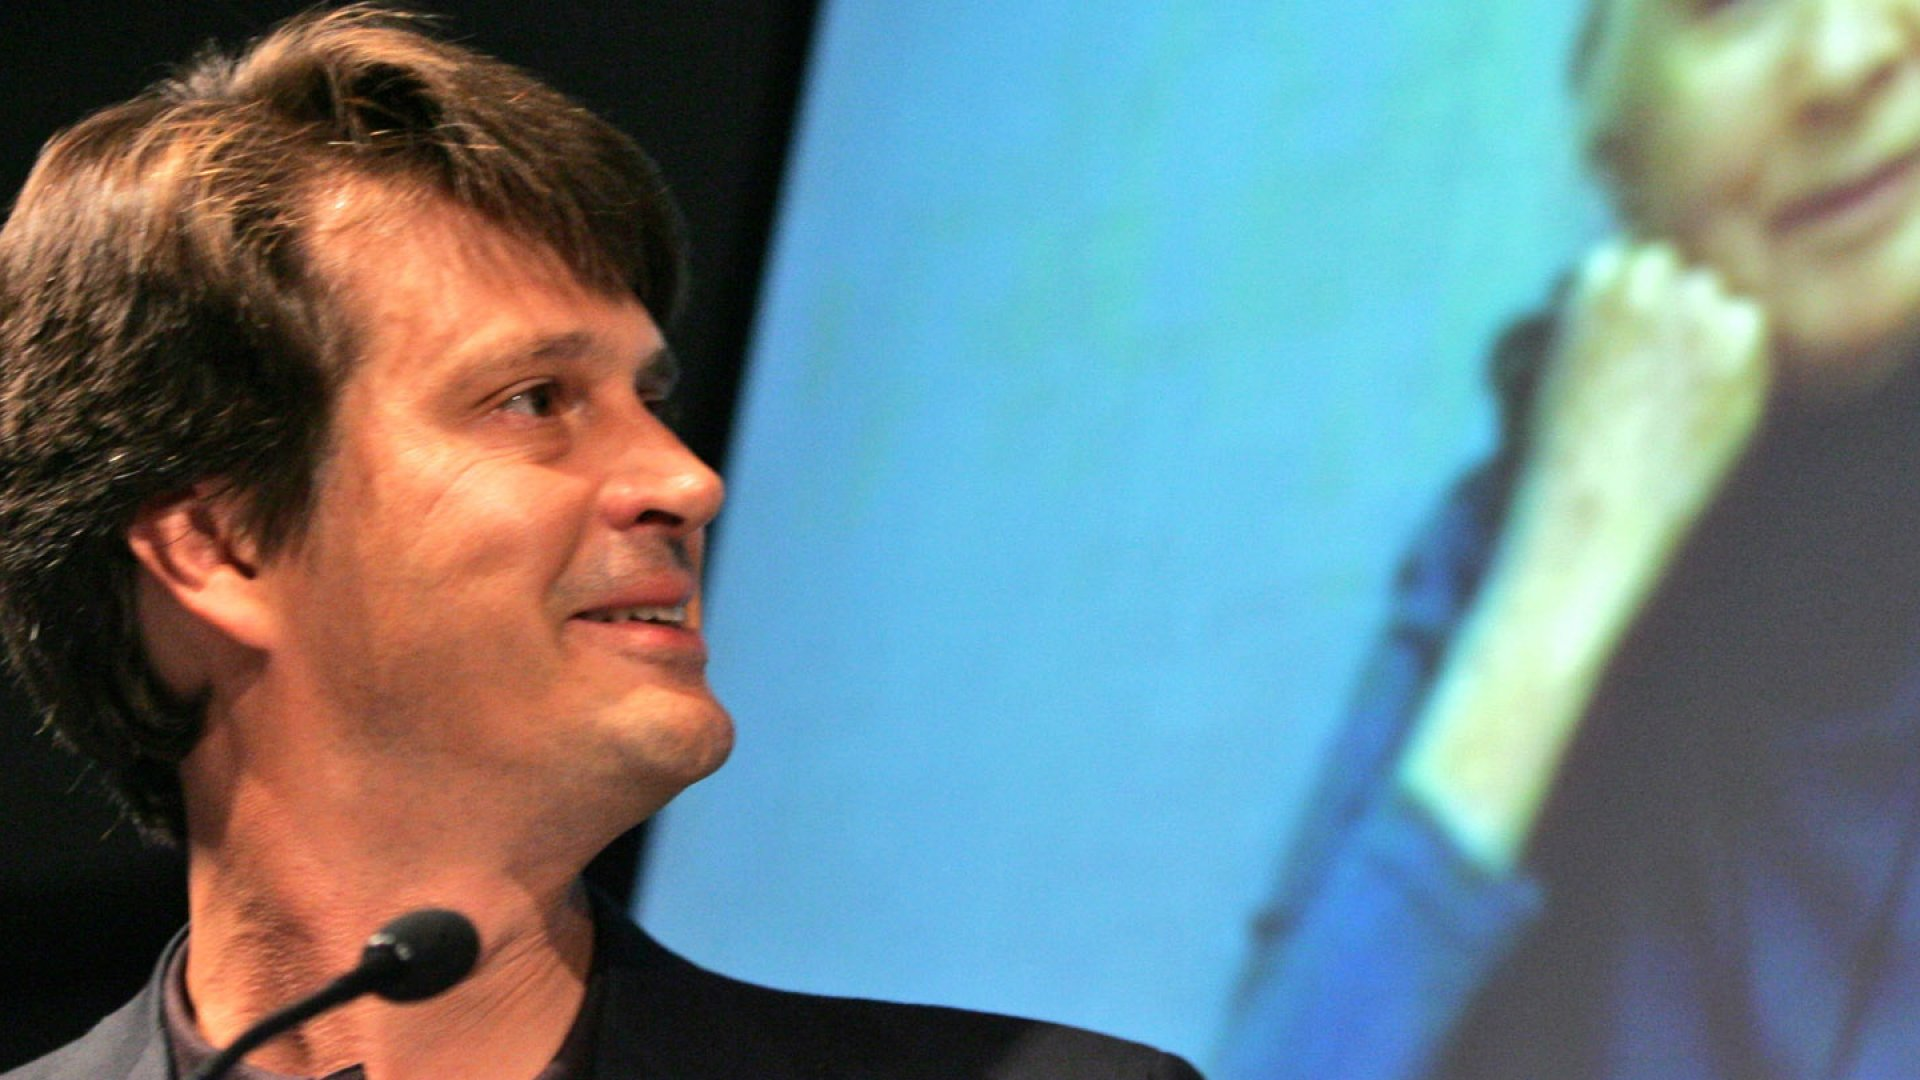 John Hanke smiles as he to London via video teleconference from Google Earth's offices in New York.